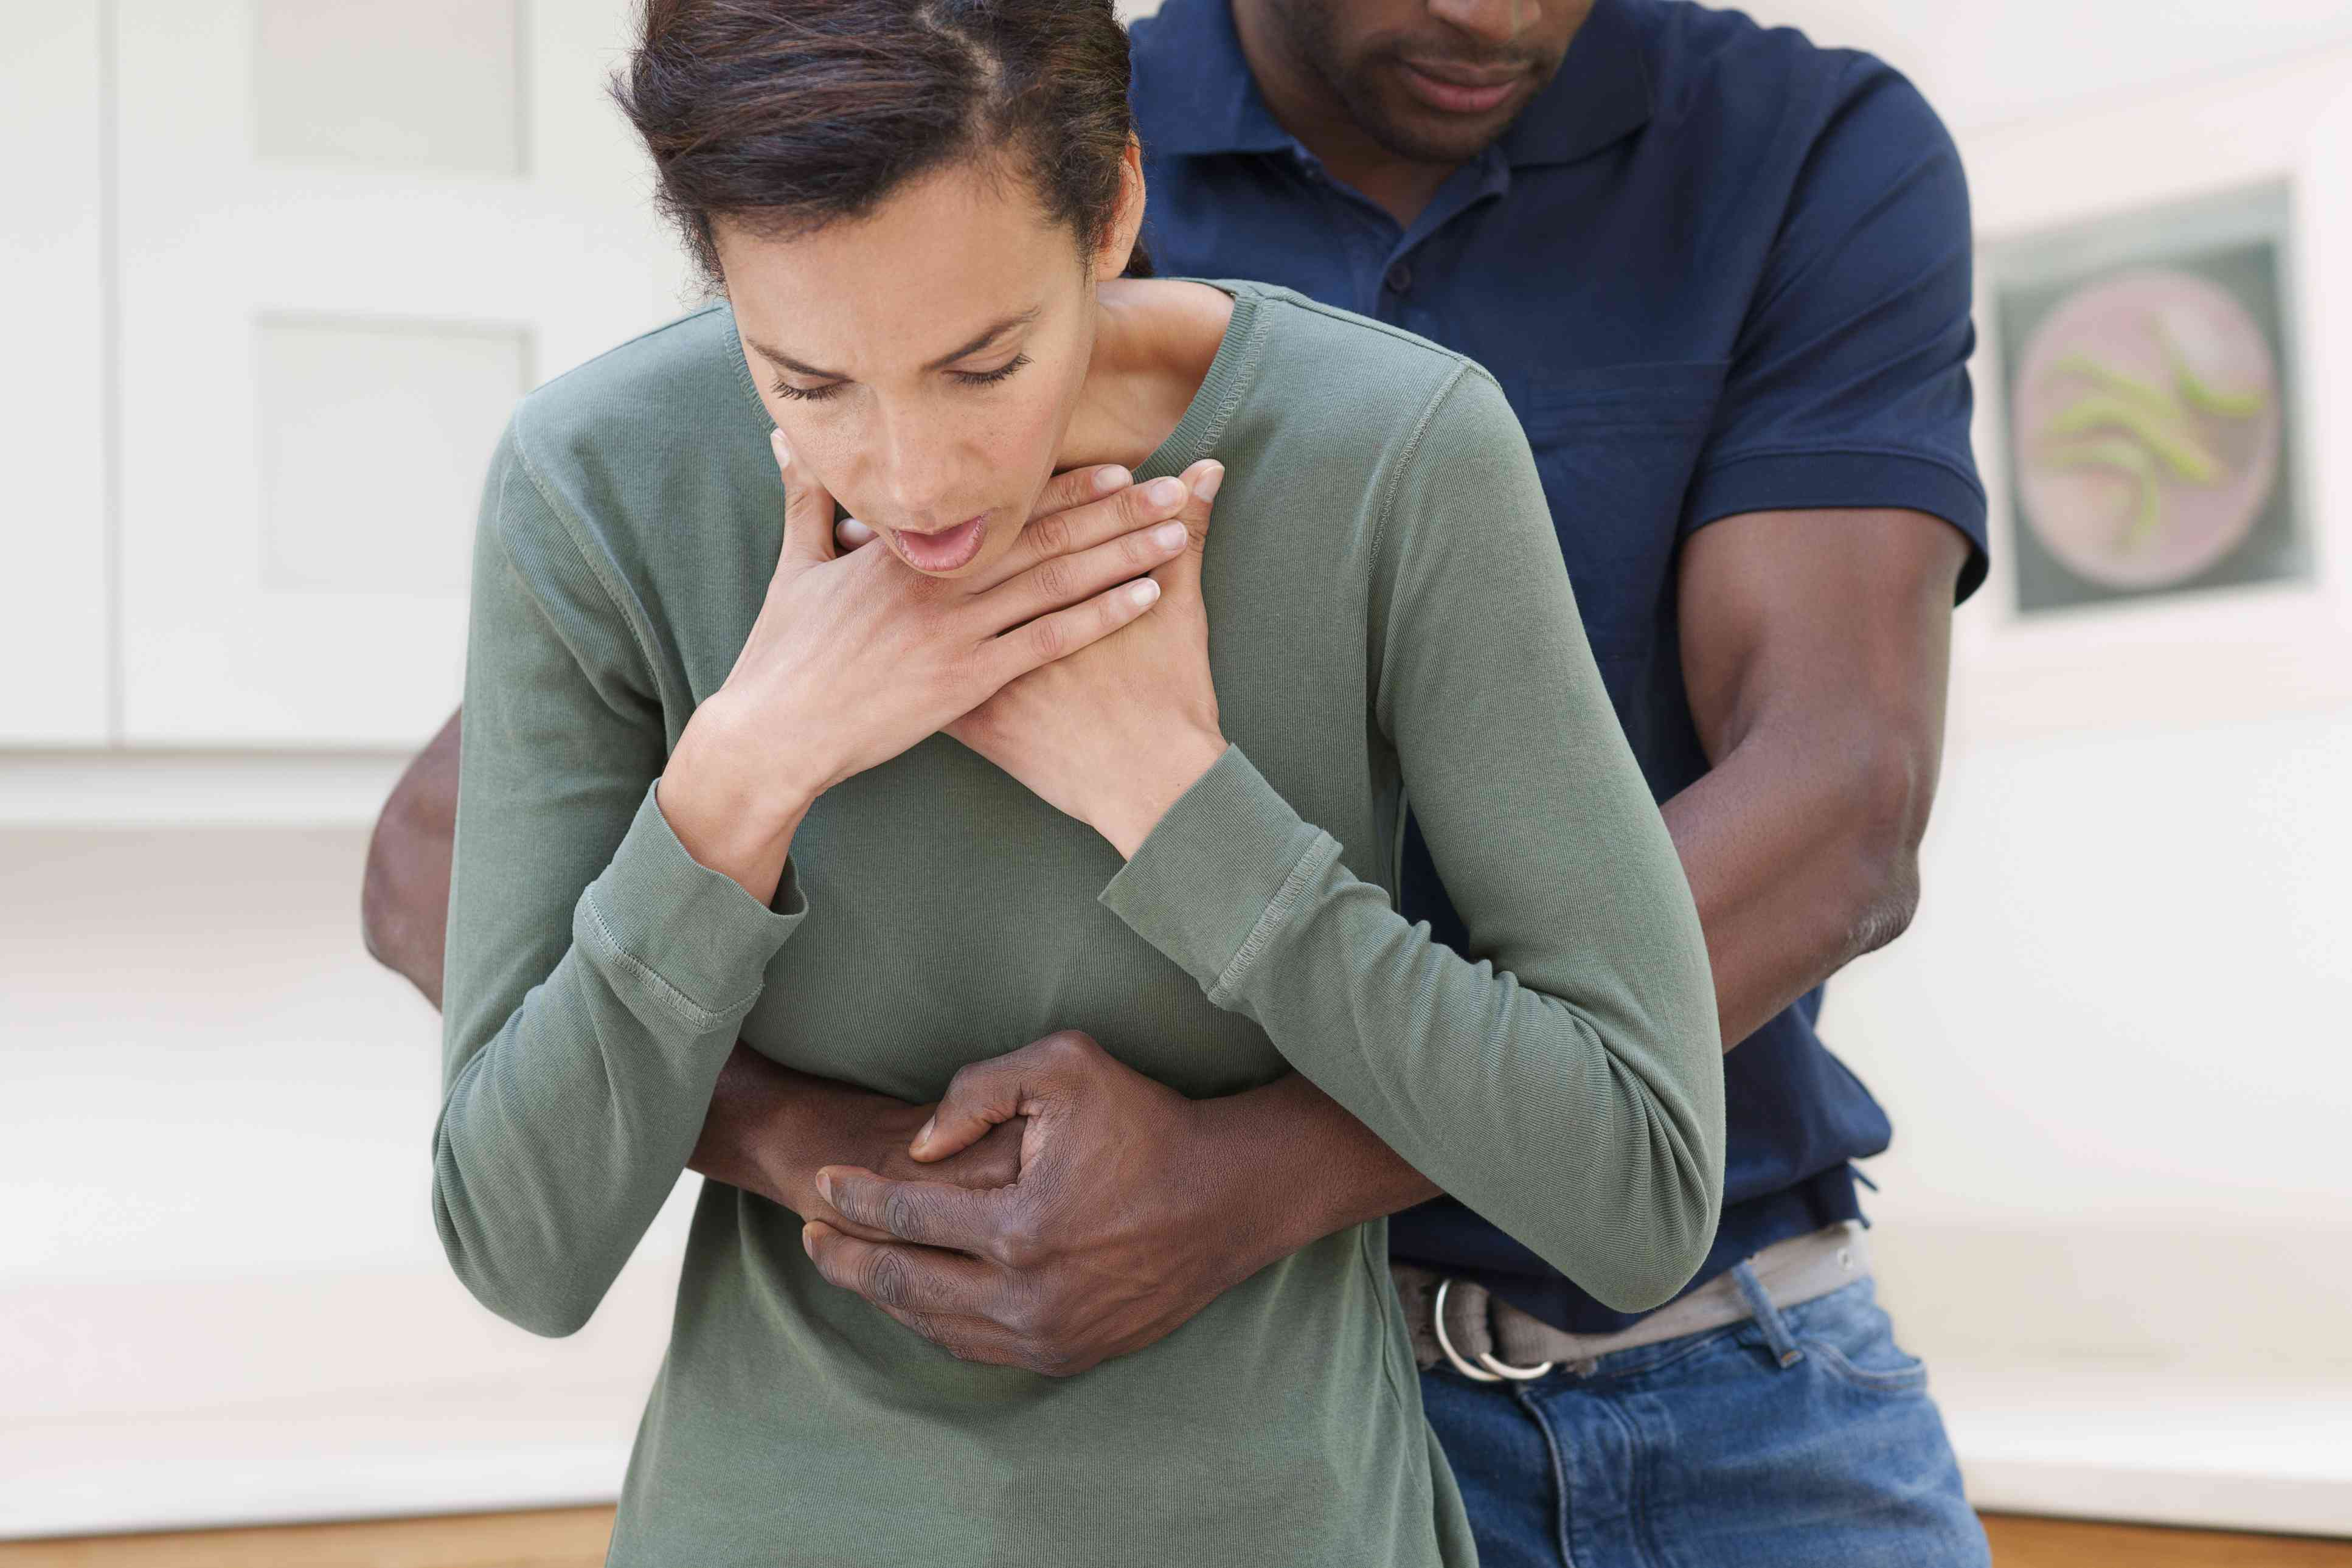 A man doing the heimlich maneuver on a woman